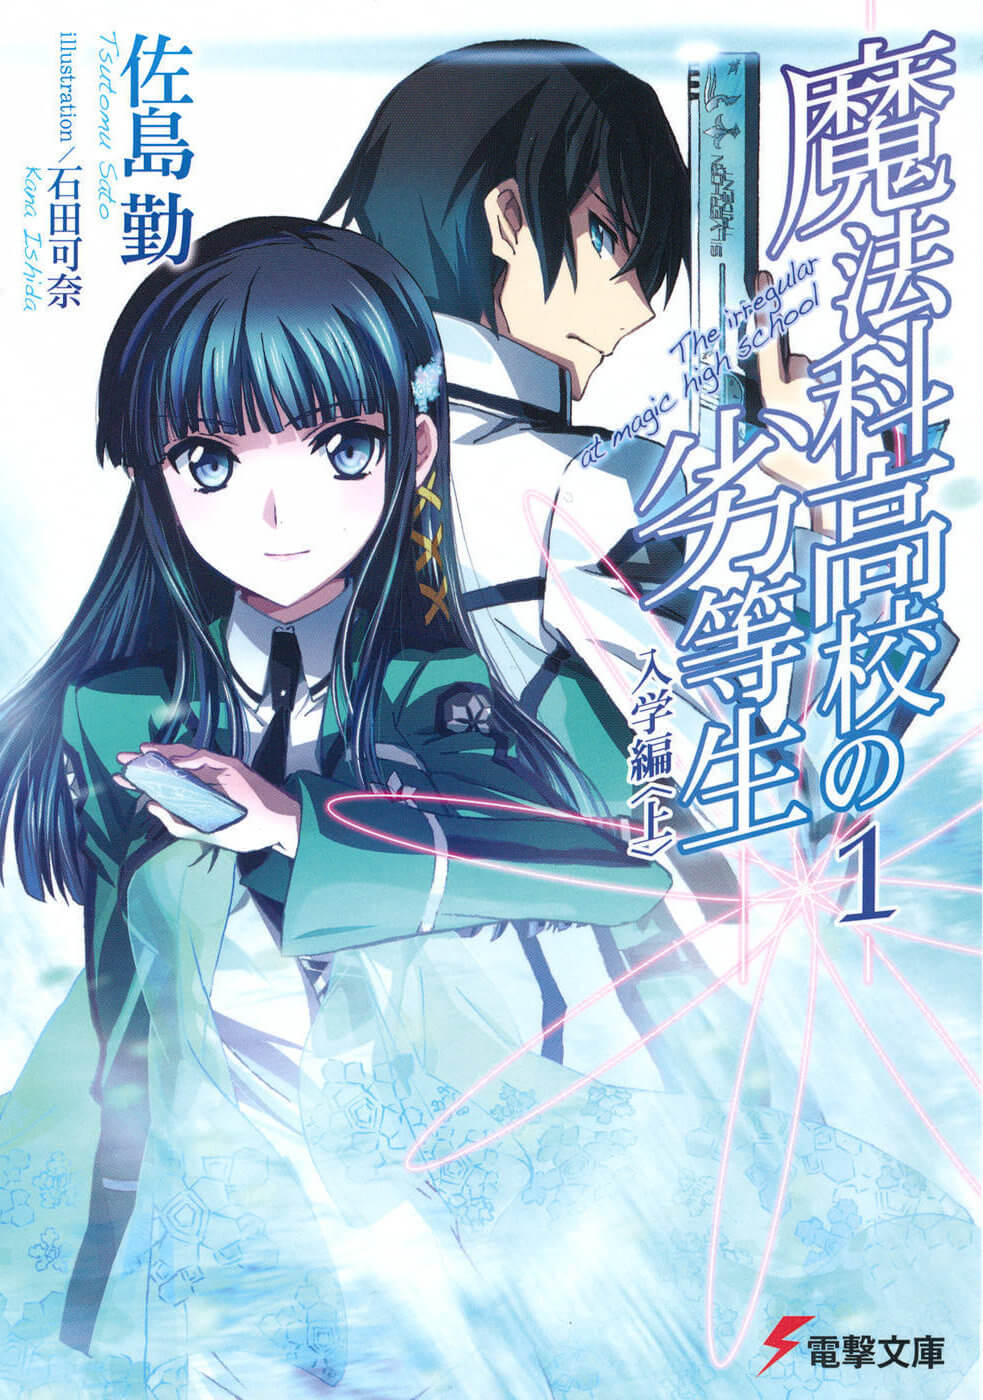 Yen Press Licencia Mahouka Koukou no Rettousei